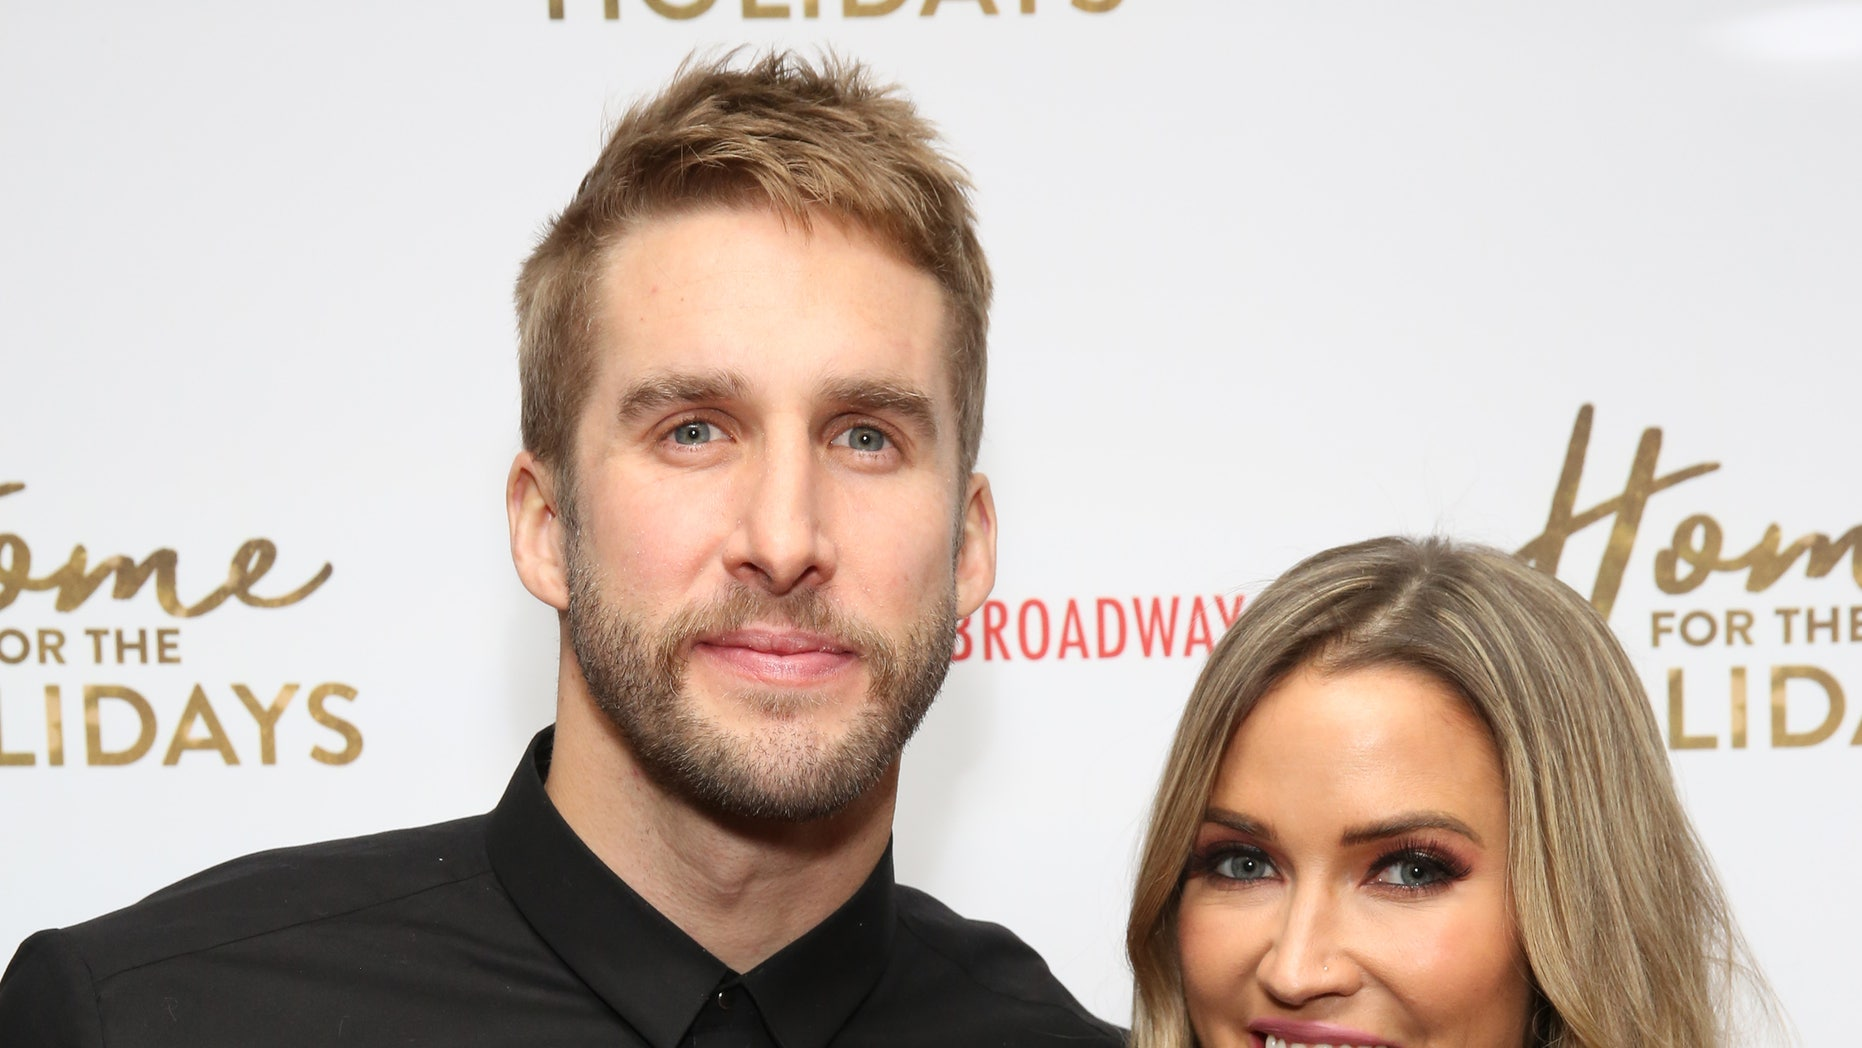 Shawn Booth and Kaitlyn Bristowe have called it quits.